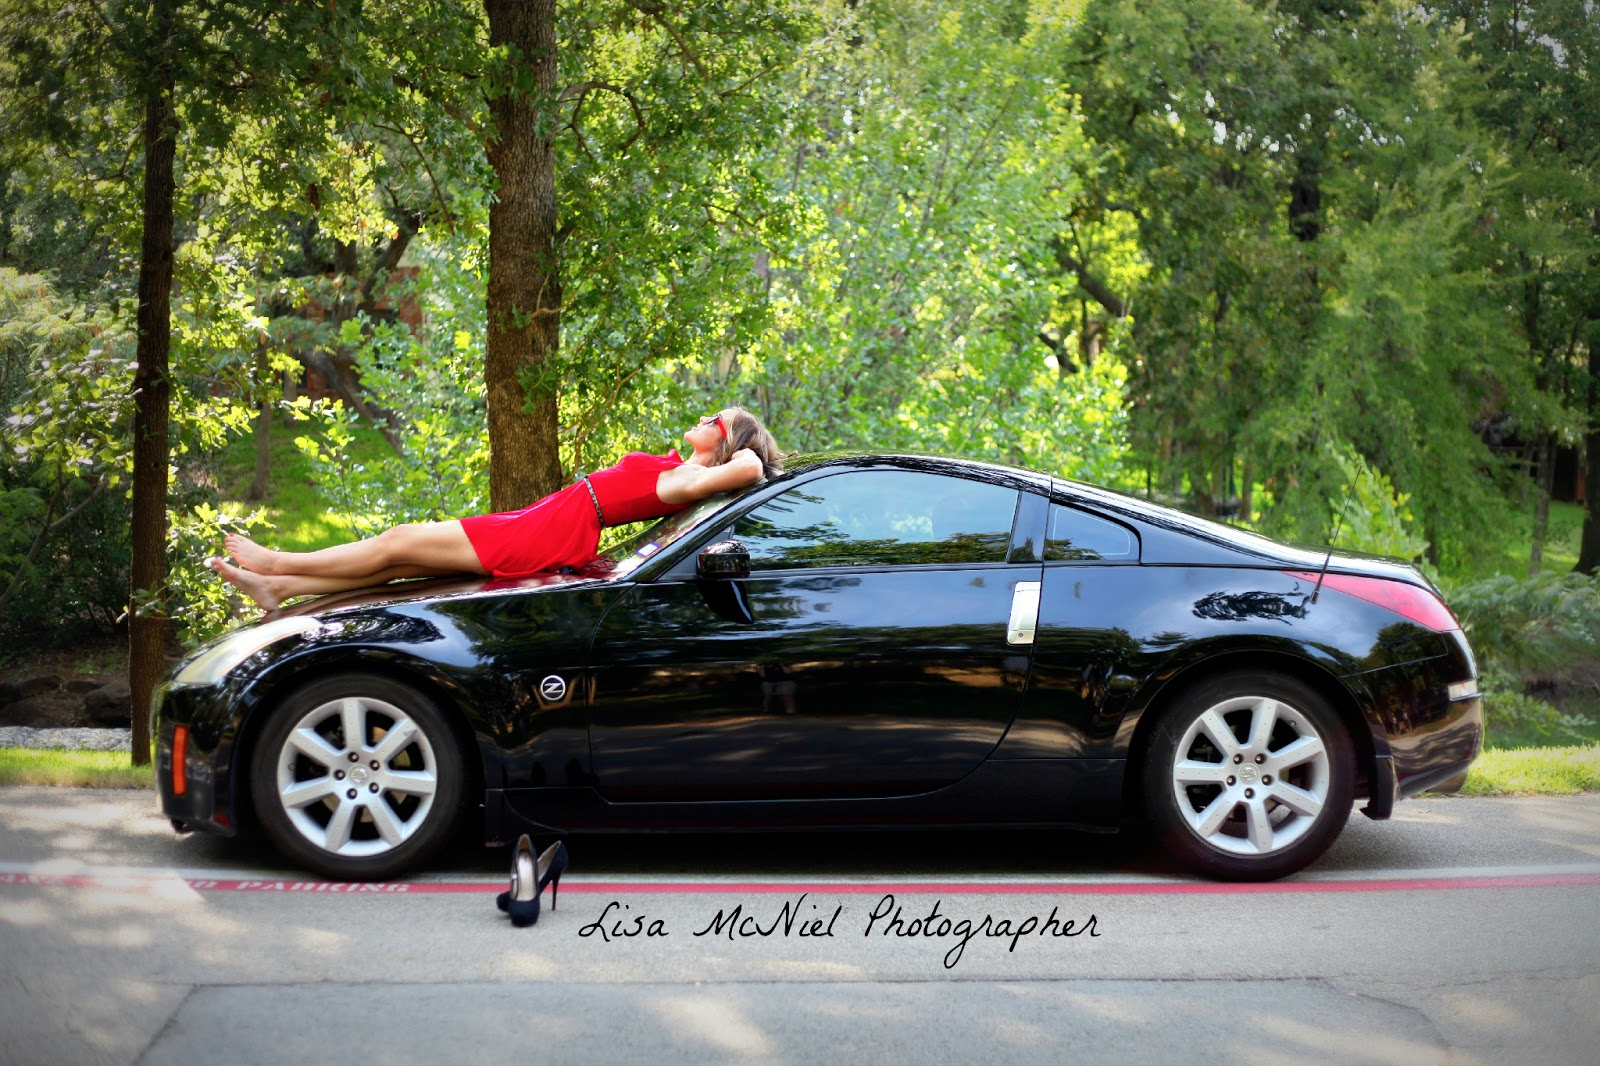 Lisa Marie Photography Flower Mound Photographer Serving Dallas Fort Worth And North Texas Senior Pictures Of A Model